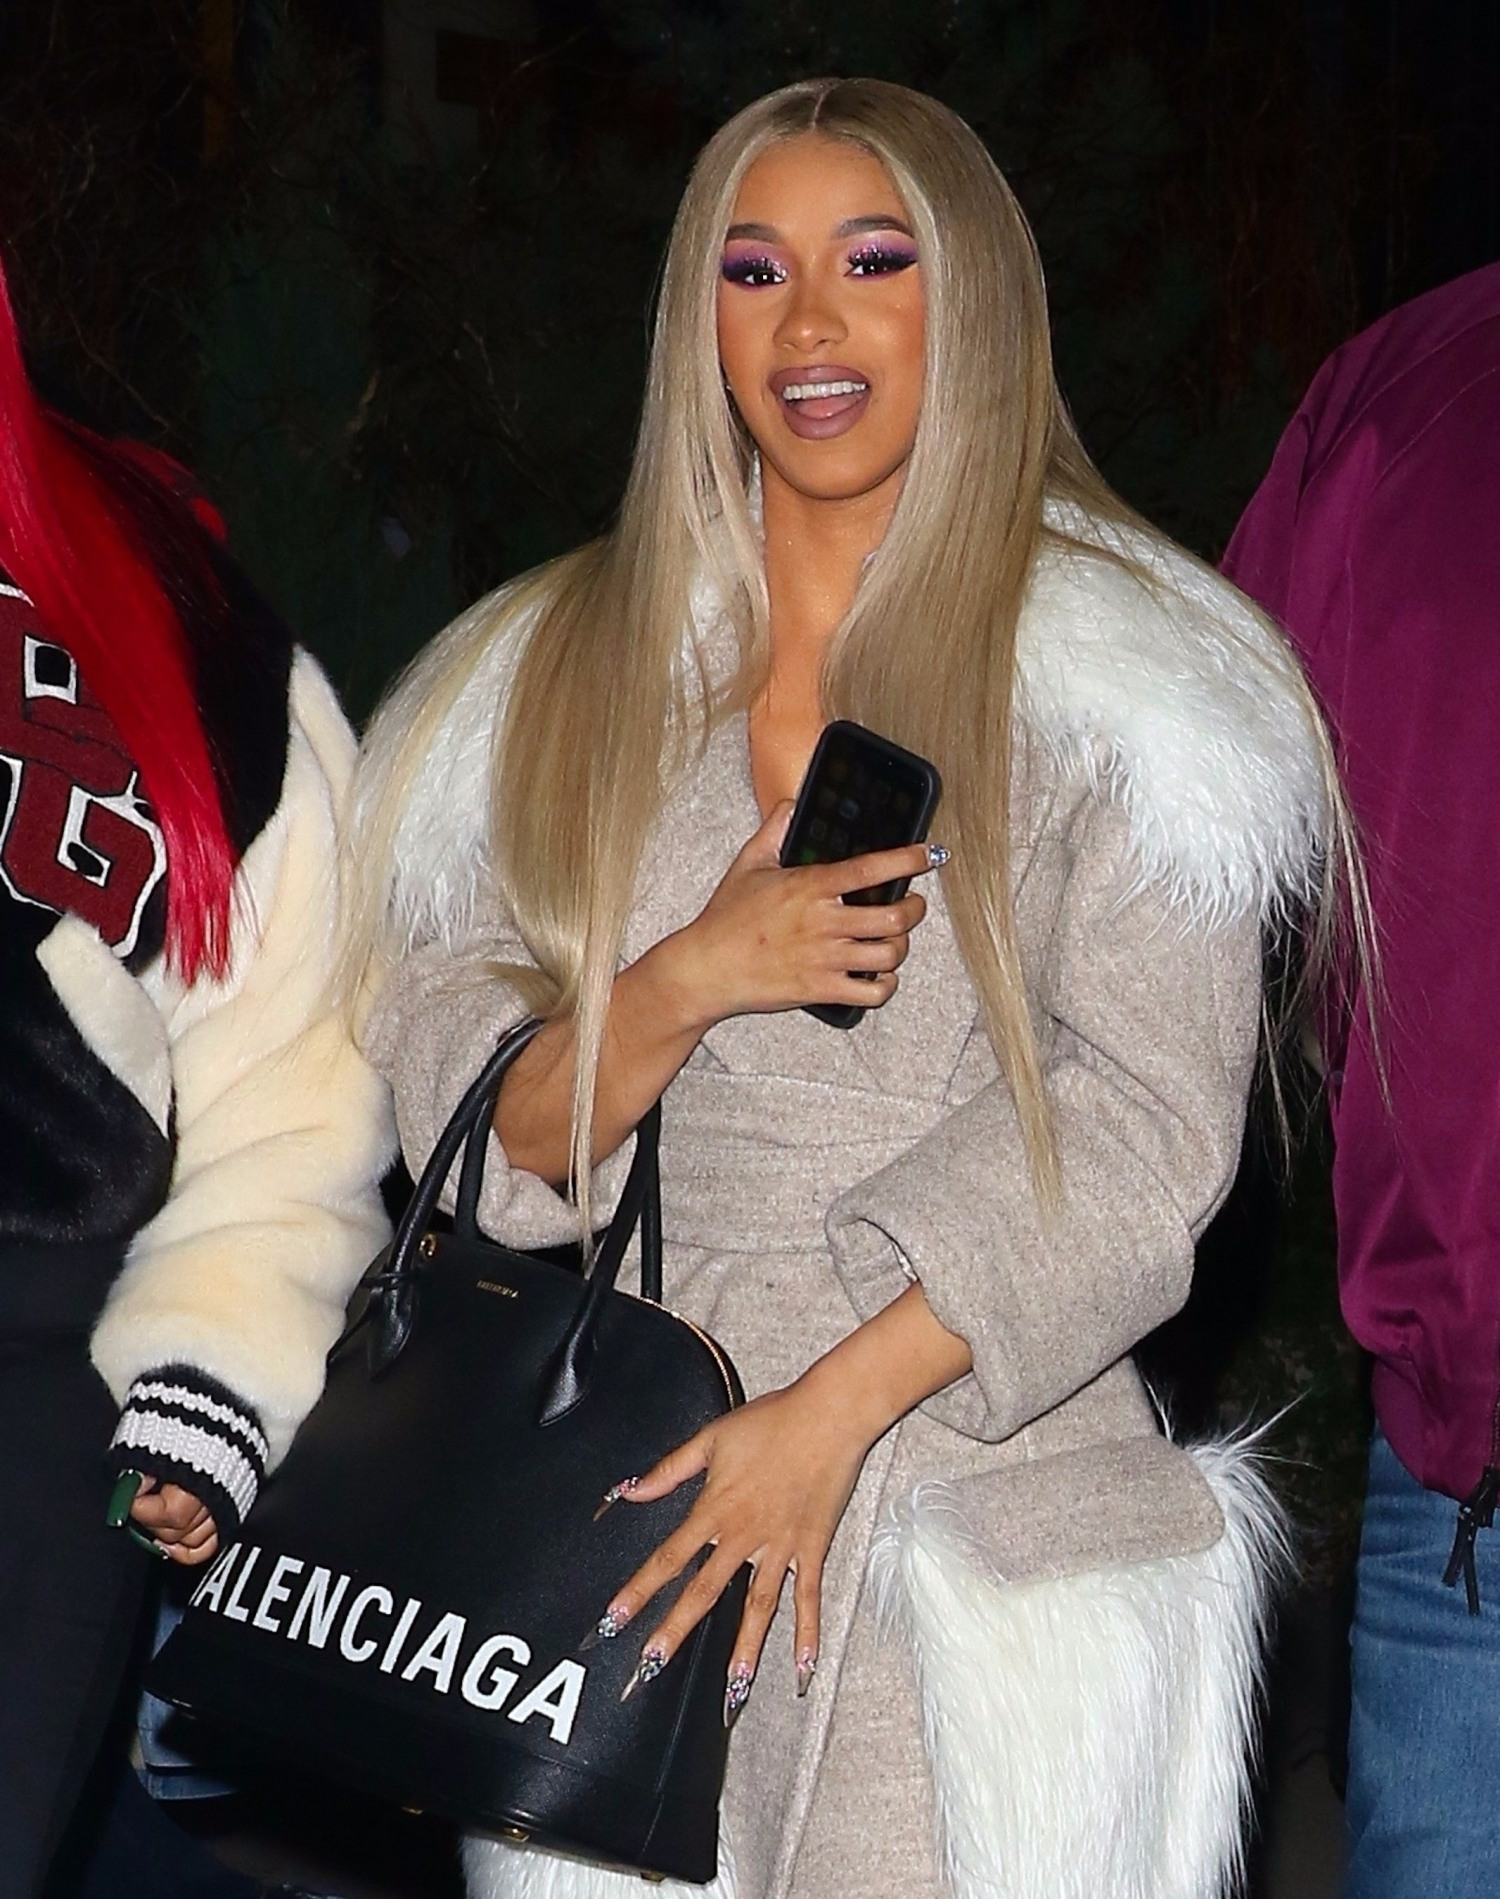 Cardi B needs to fire her publicist Patientce, who organized the Offset debacle